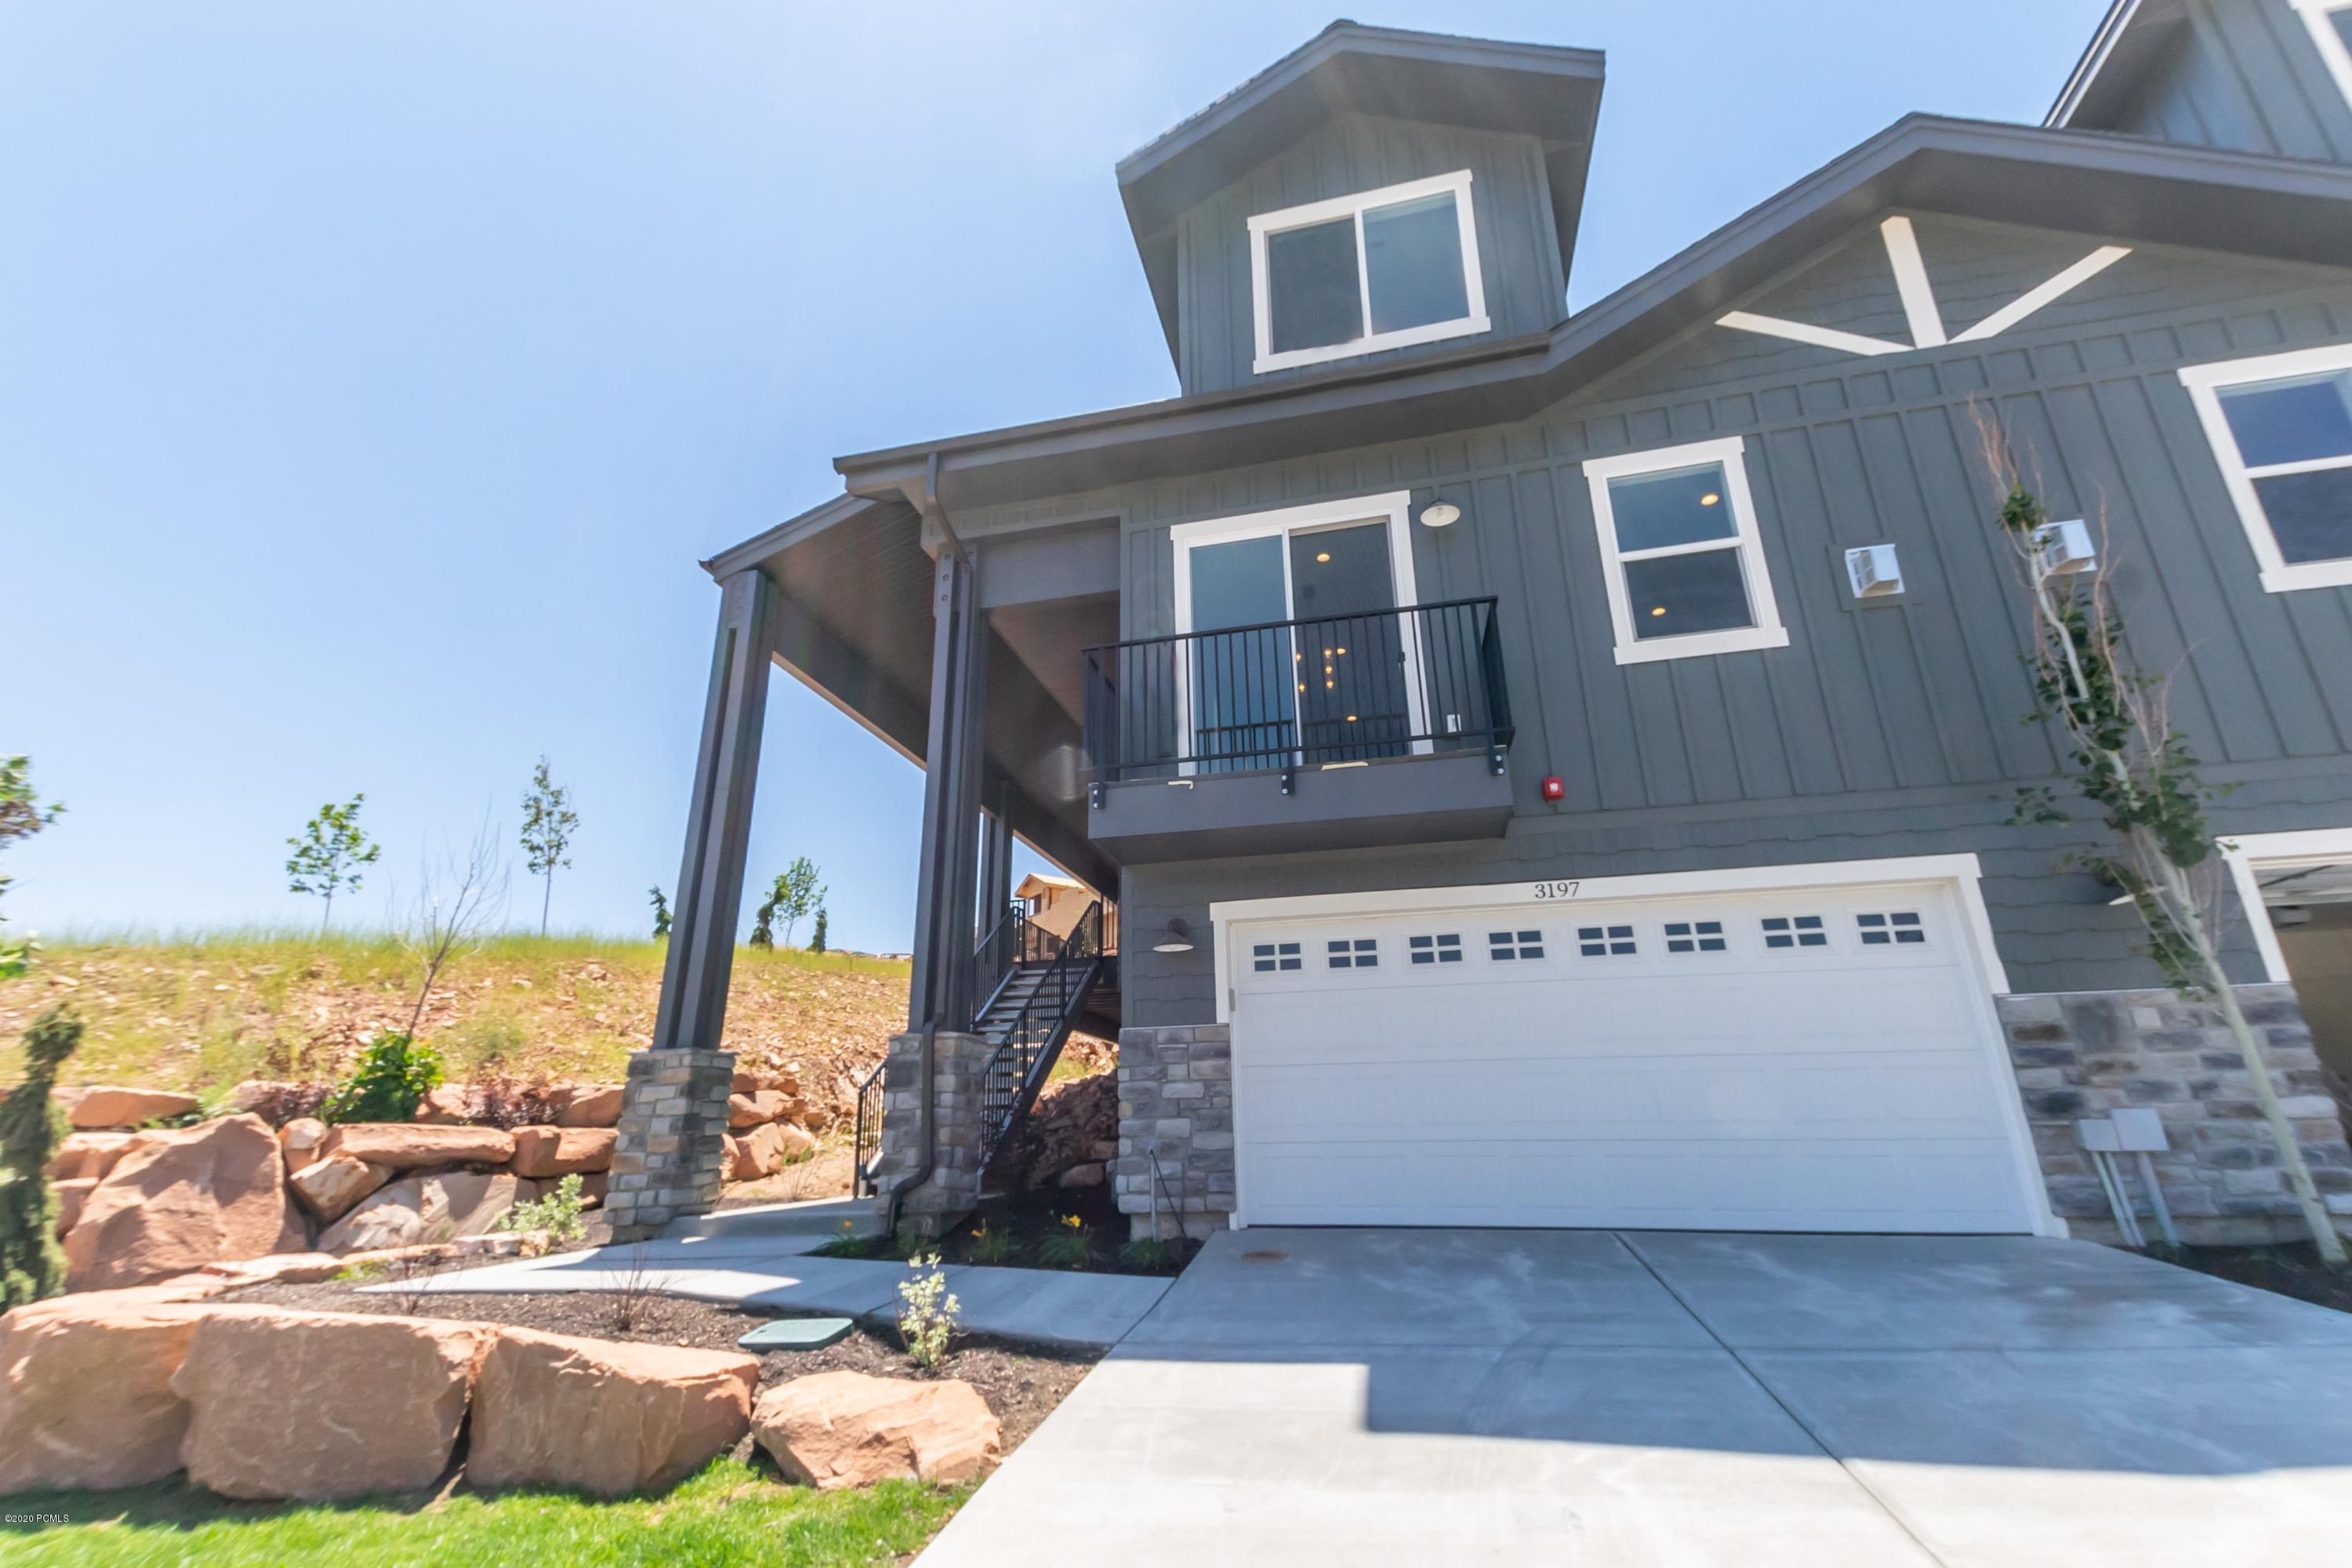 3390 Santa Fe Road, Park City, Utah 84098, 3 Bedrooms Bedrooms, ,3 BathroomsBathrooms,Condominium,For Sale,Santa Fe,12003882